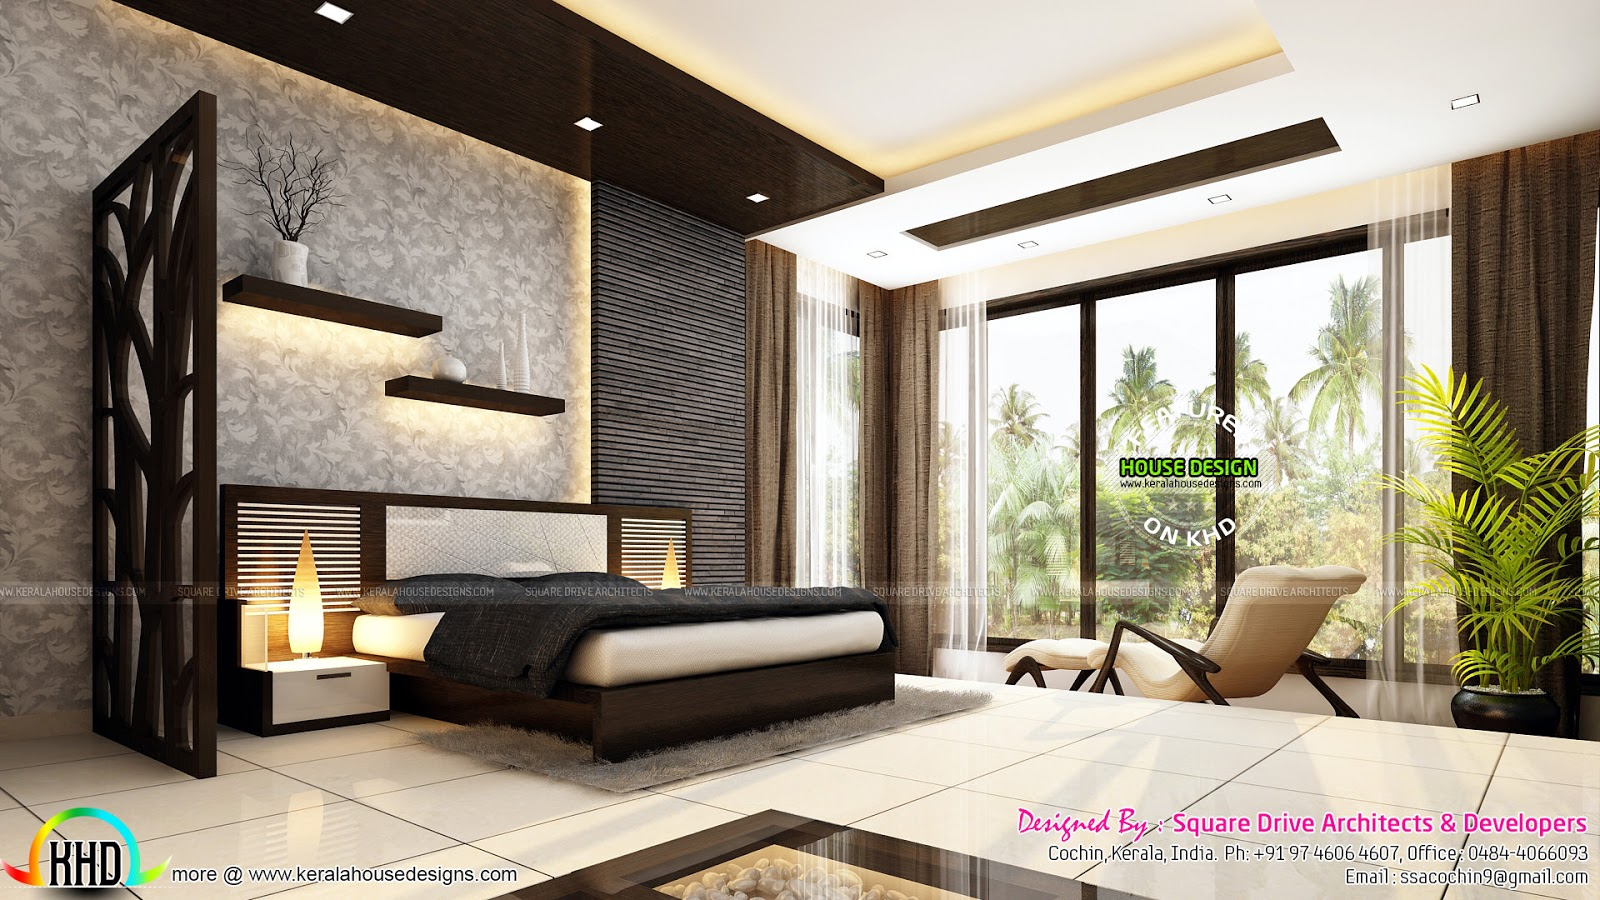 Very beautiful modern interior designs kerala home for Indoor design home